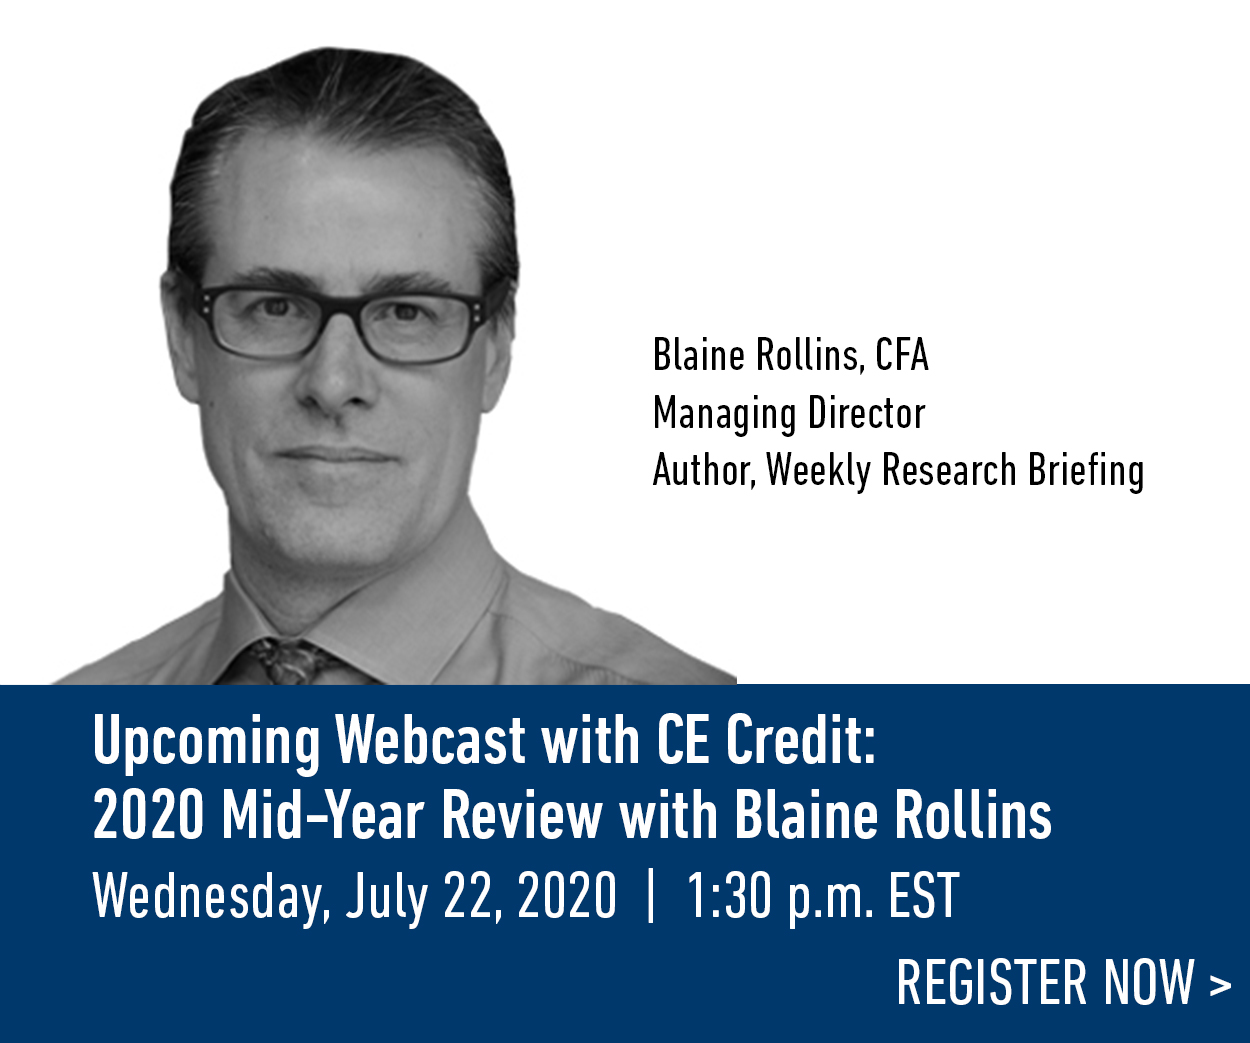 2020 Mid-Year Review Webcast